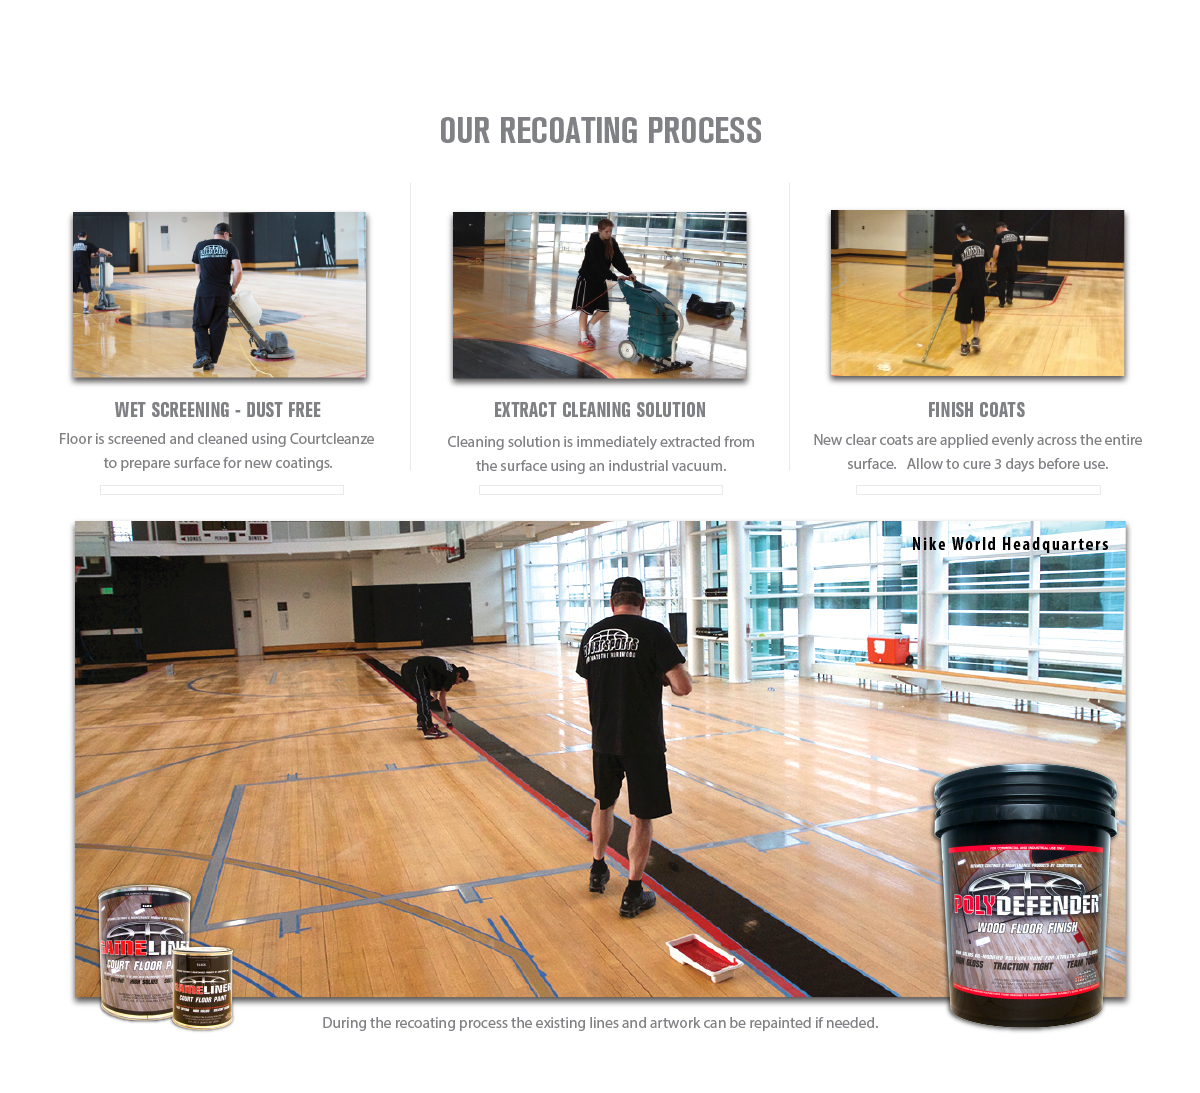 OUR BASKETBALL GYM FLOOR RECOATING PROCESS - WETS SCREENING, EXTRACT CLEANING SOLUTION, APPLY FINISH COATS.